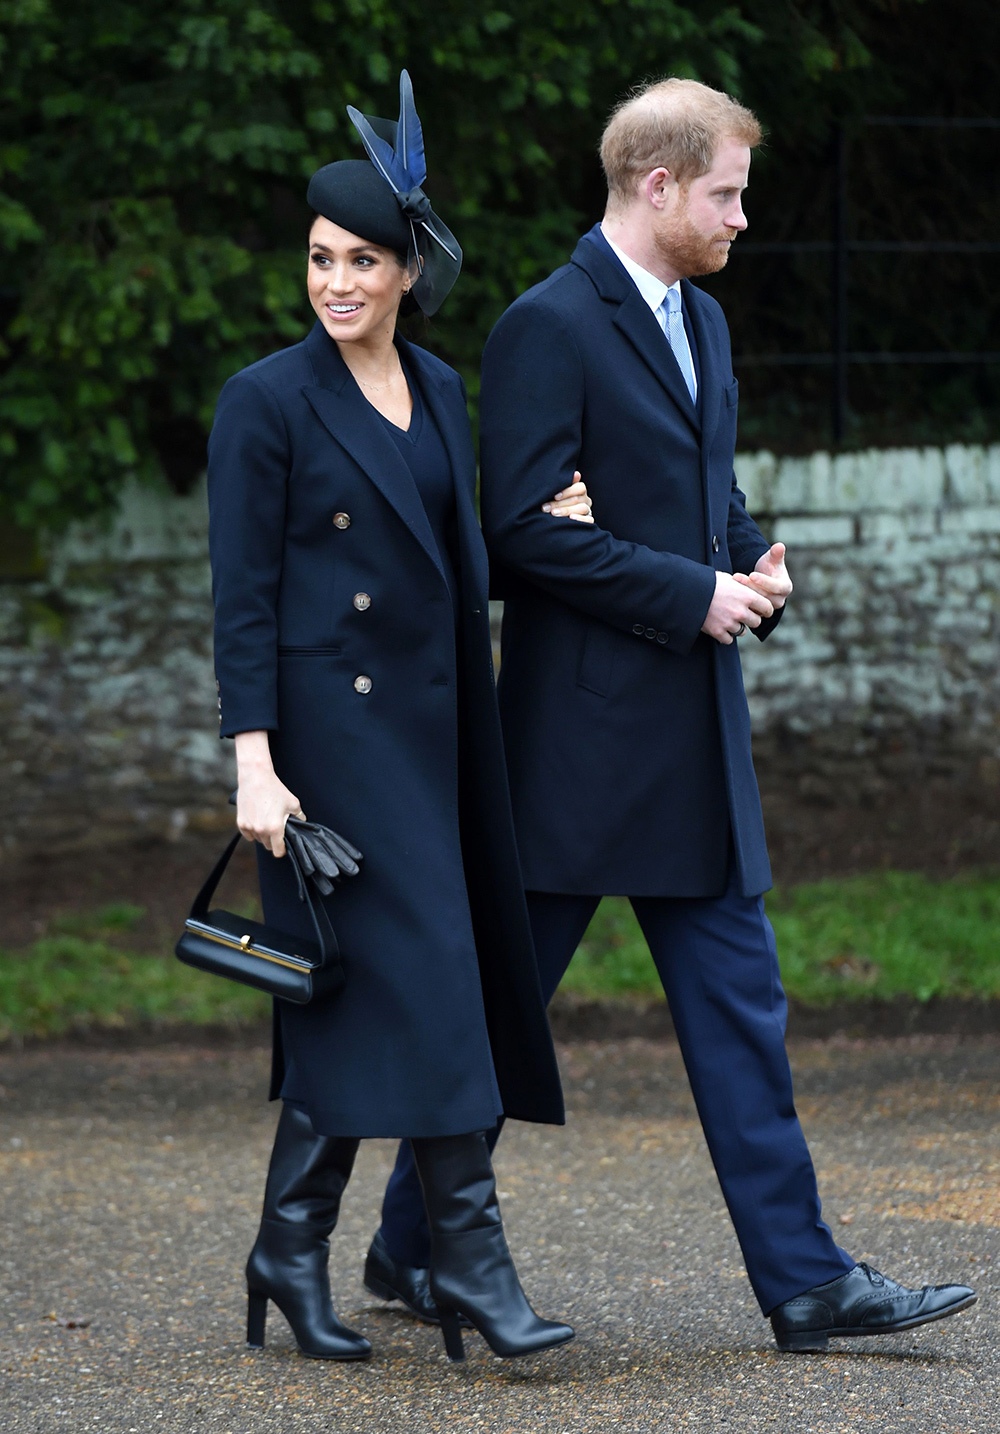 Meghan, Duchess of Sussex attends Christmas Day Church service at Church of St Mary Magdalene on the Sandringham estate on December 25, 2018 in King's Lynn, England.